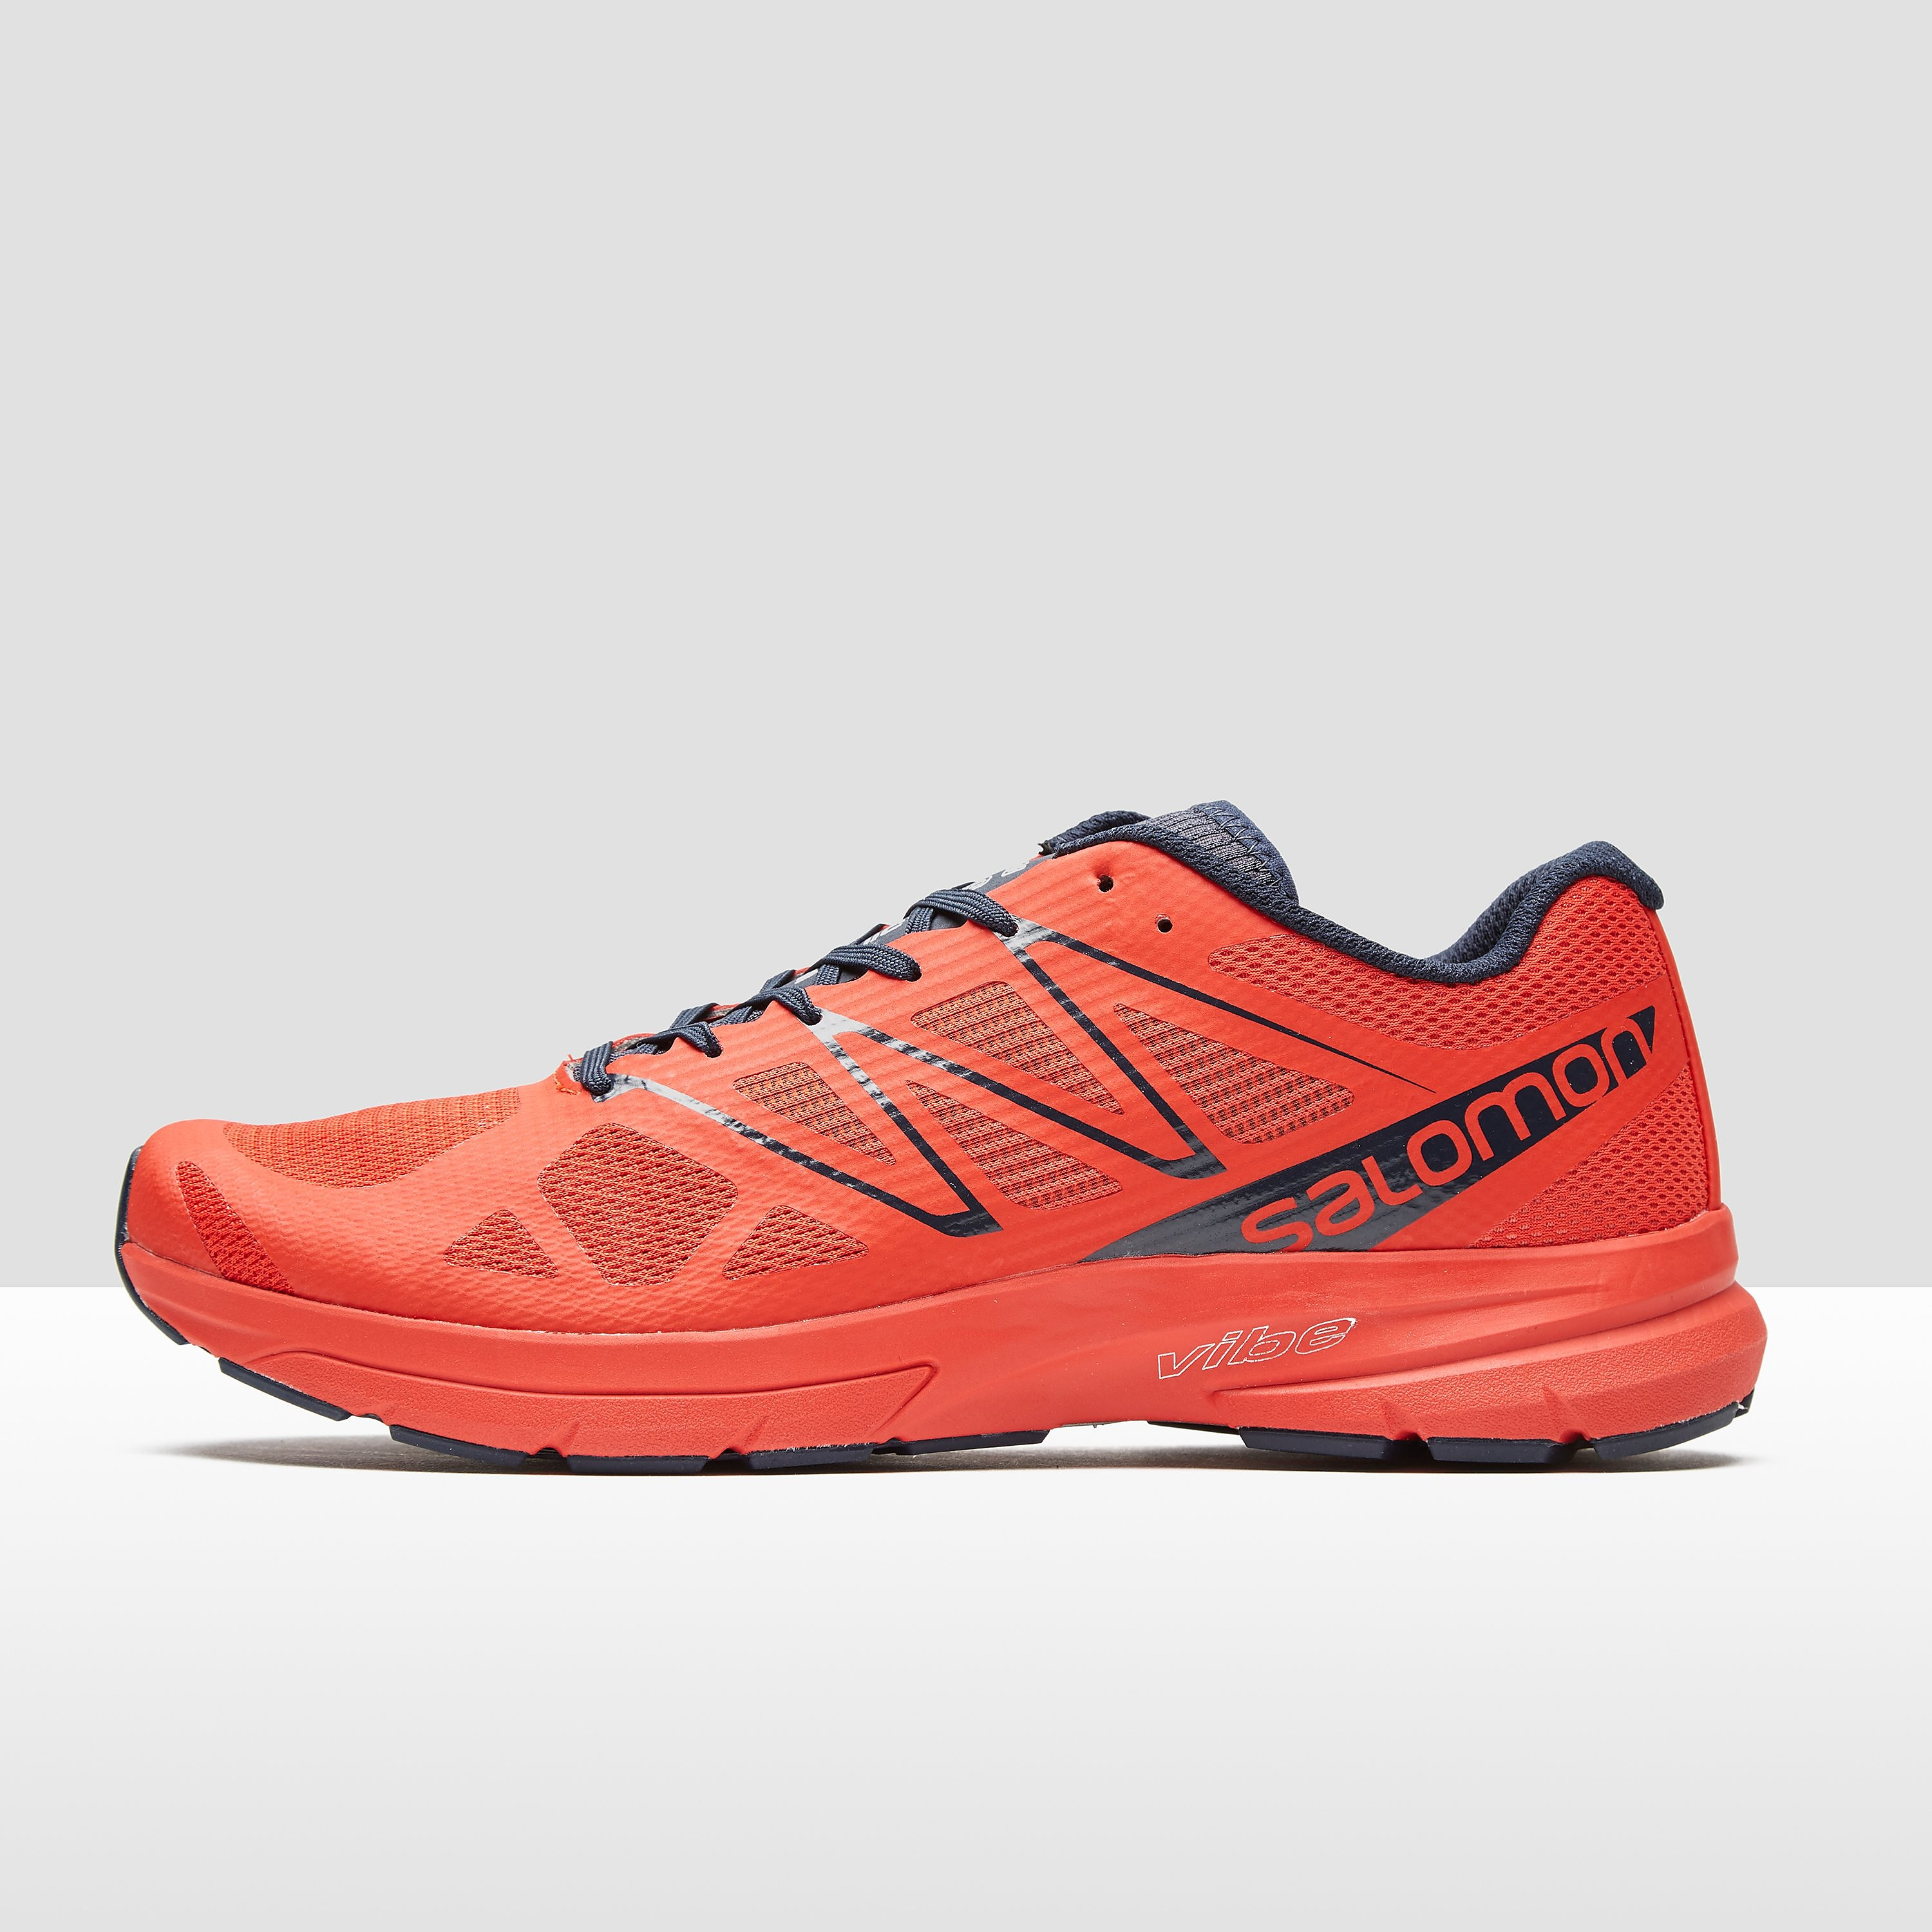 Salomon Sonic Pro 2 Men's Running Shoes